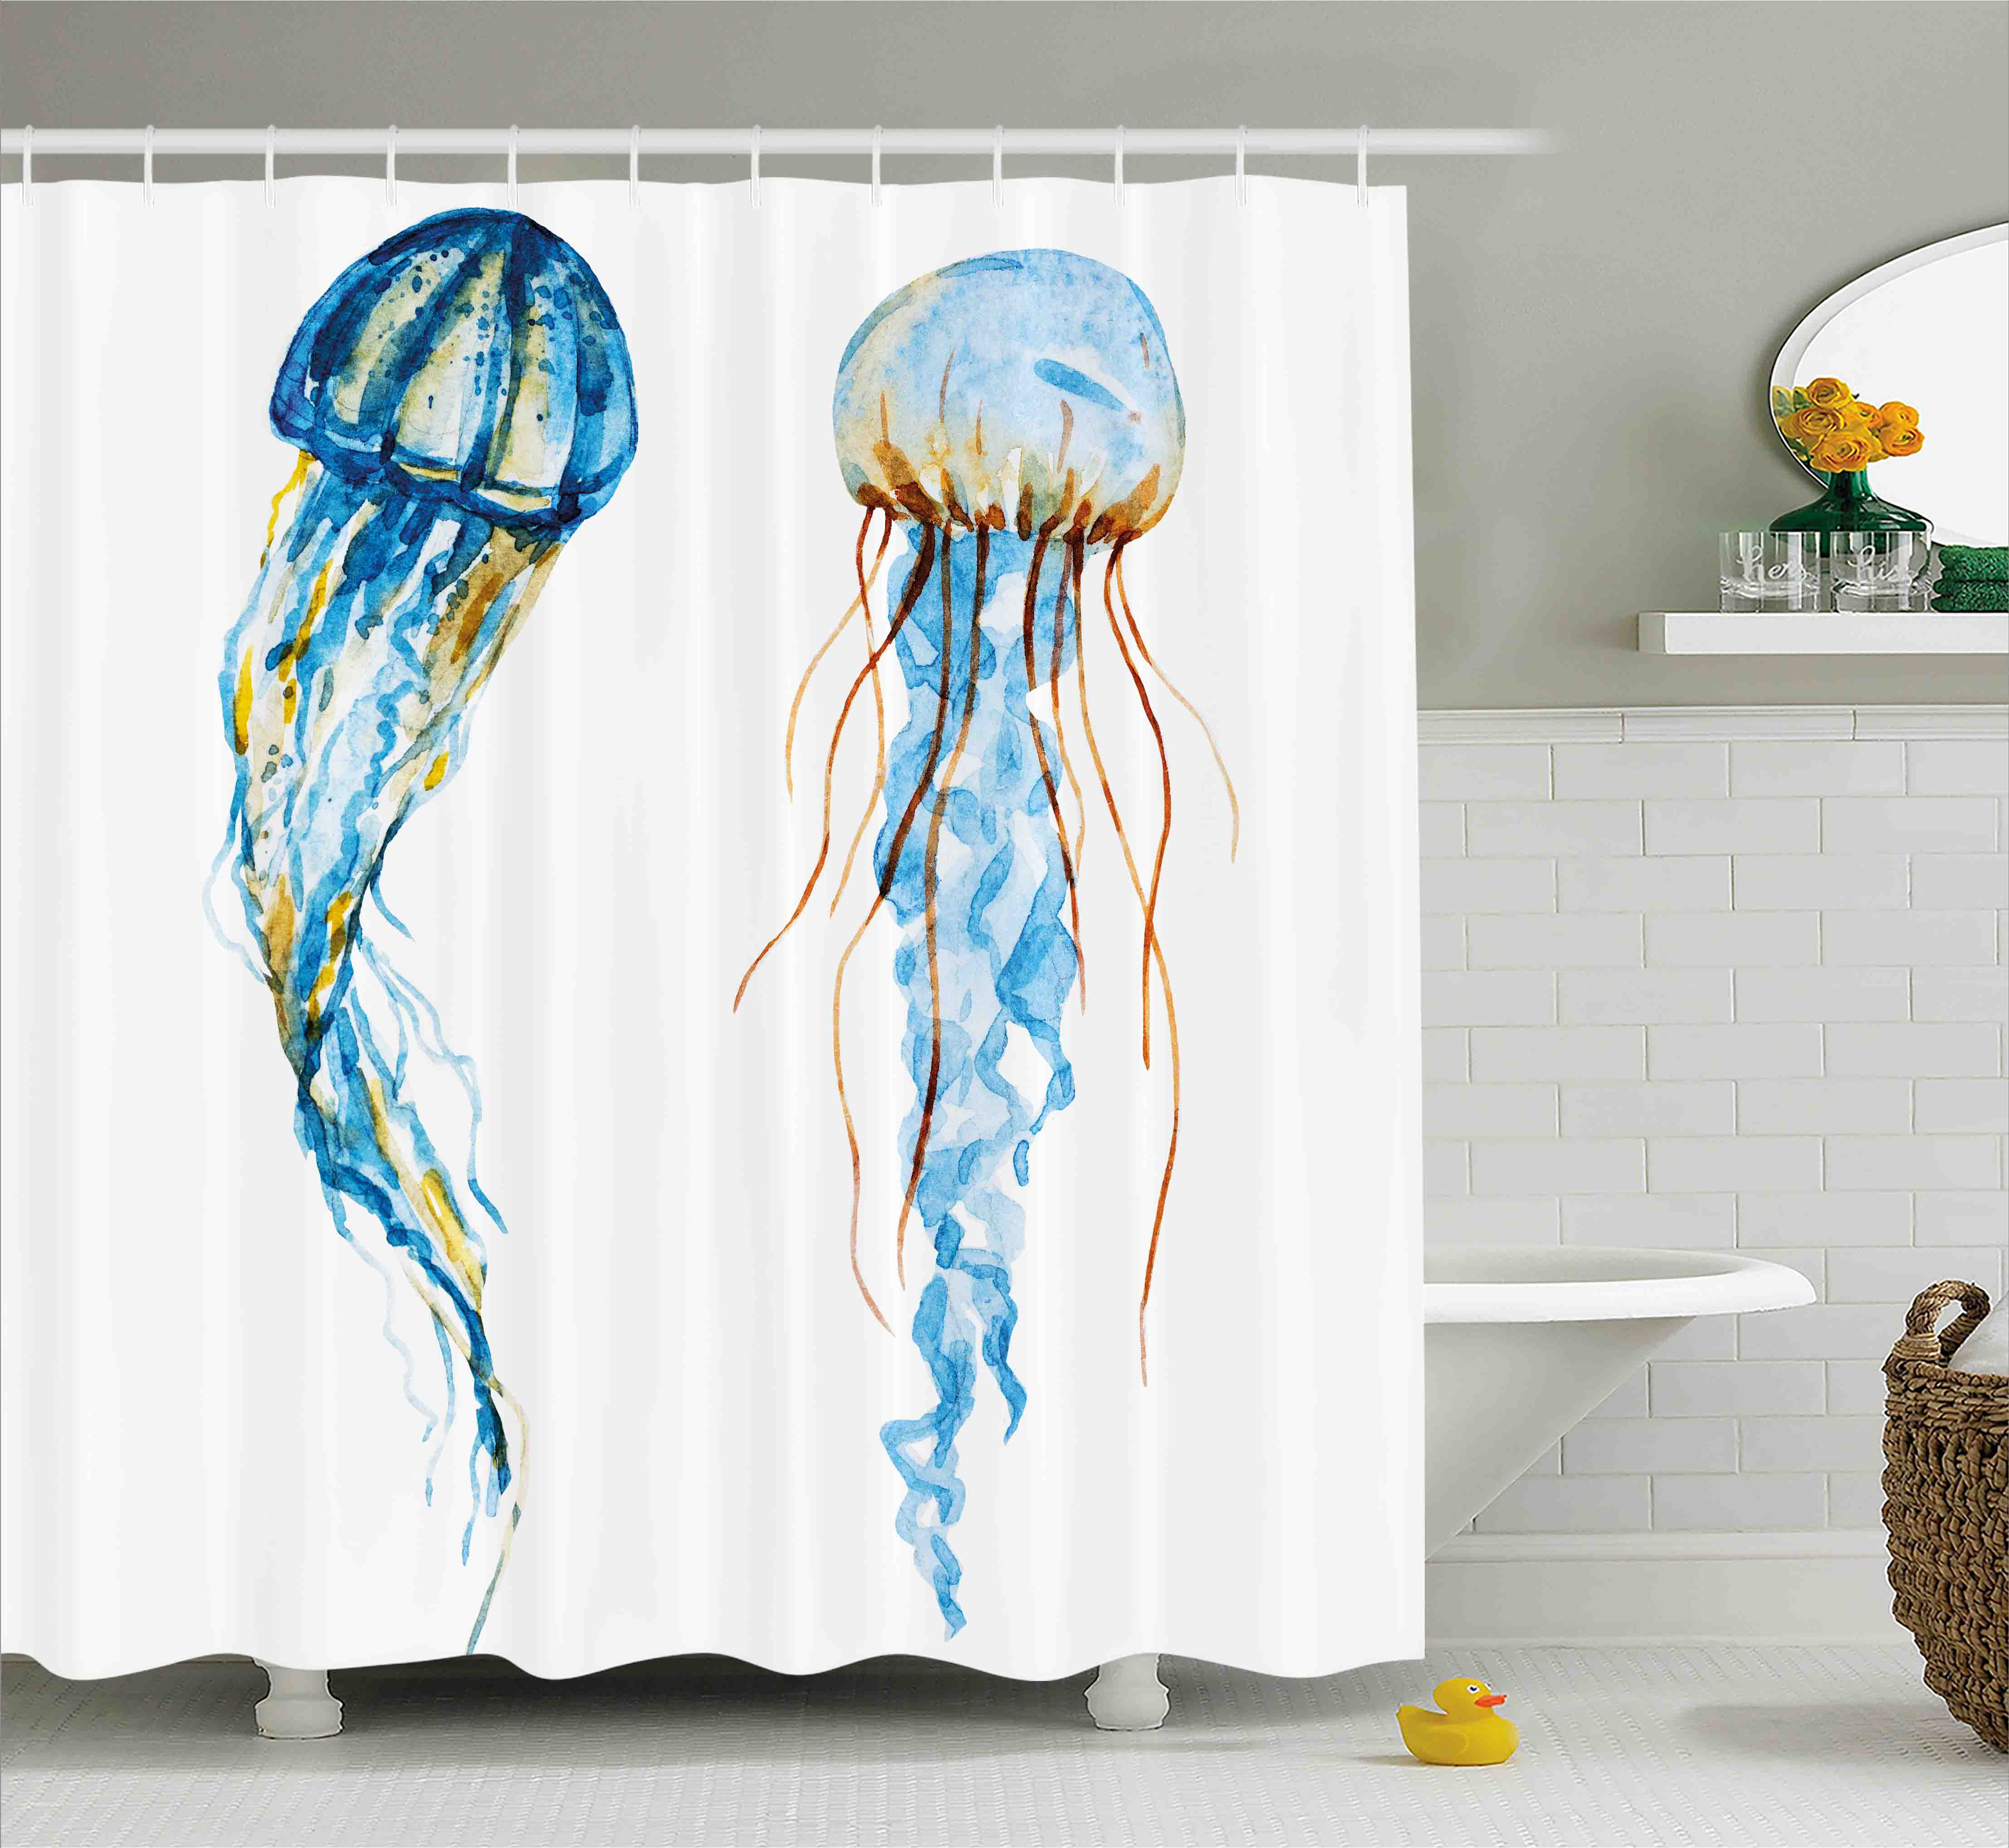 Nautical Decor Shower Curtain, Cute Jellyfish Exotic Sea Ocean Creature Aquatic Animals Watercolor Raster Graphic, Fabric Bathroom Set with Hooks, 69W X 75L Inches Long, Blue, by Ambesonne